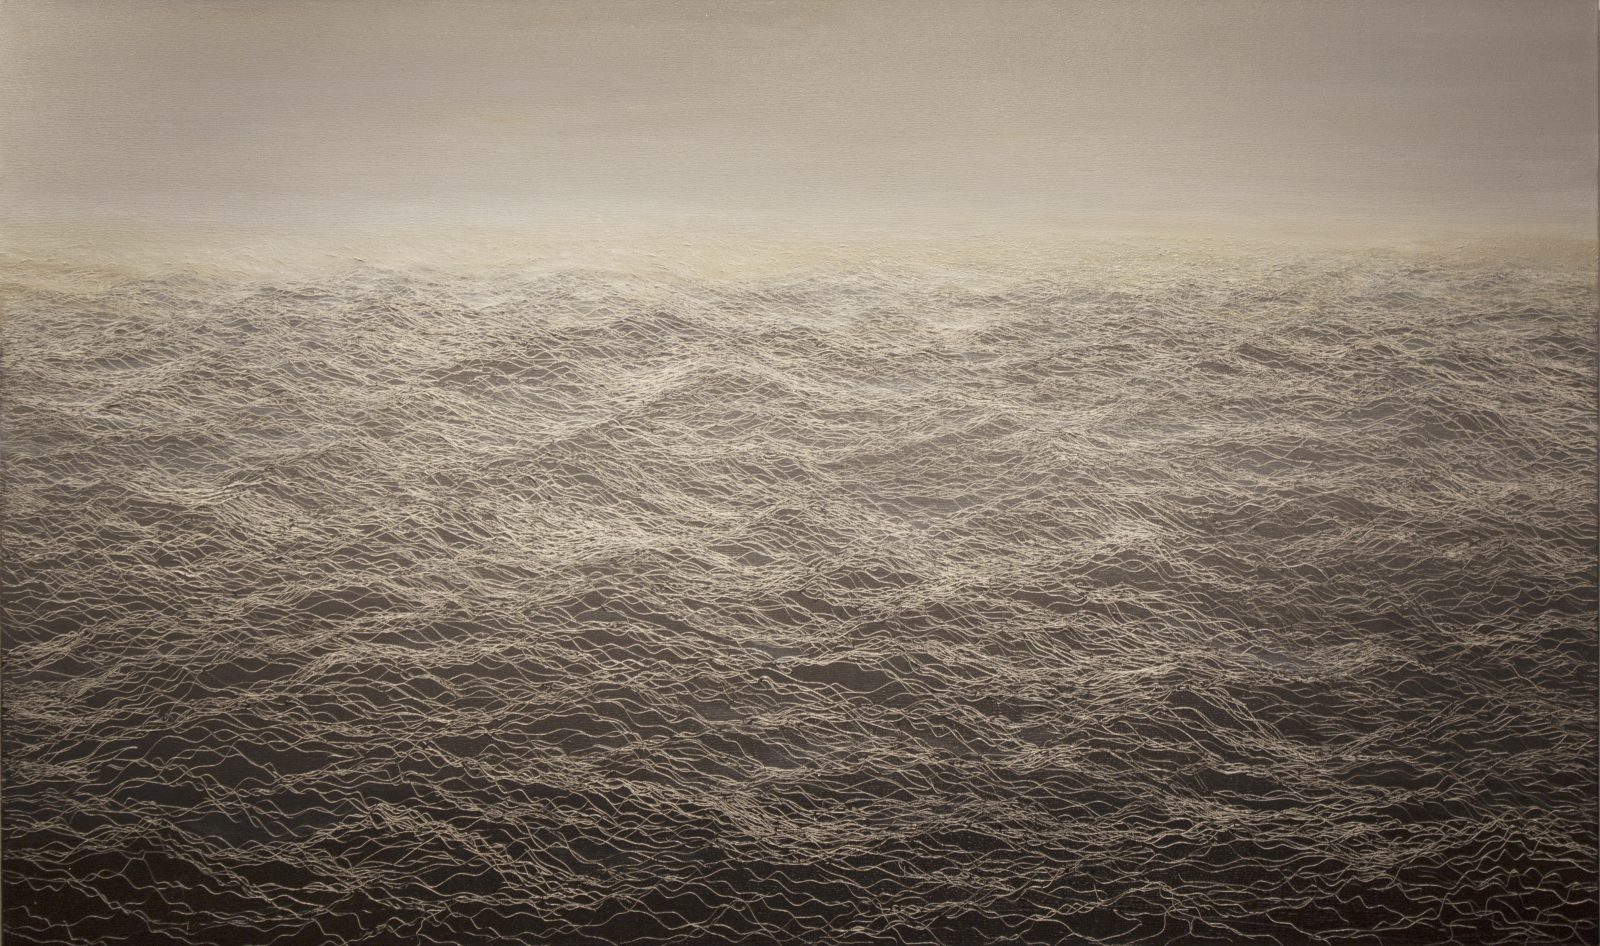 無題 N-8, Untitled N-8, 92 x 153 cm, oil on linen, 2012